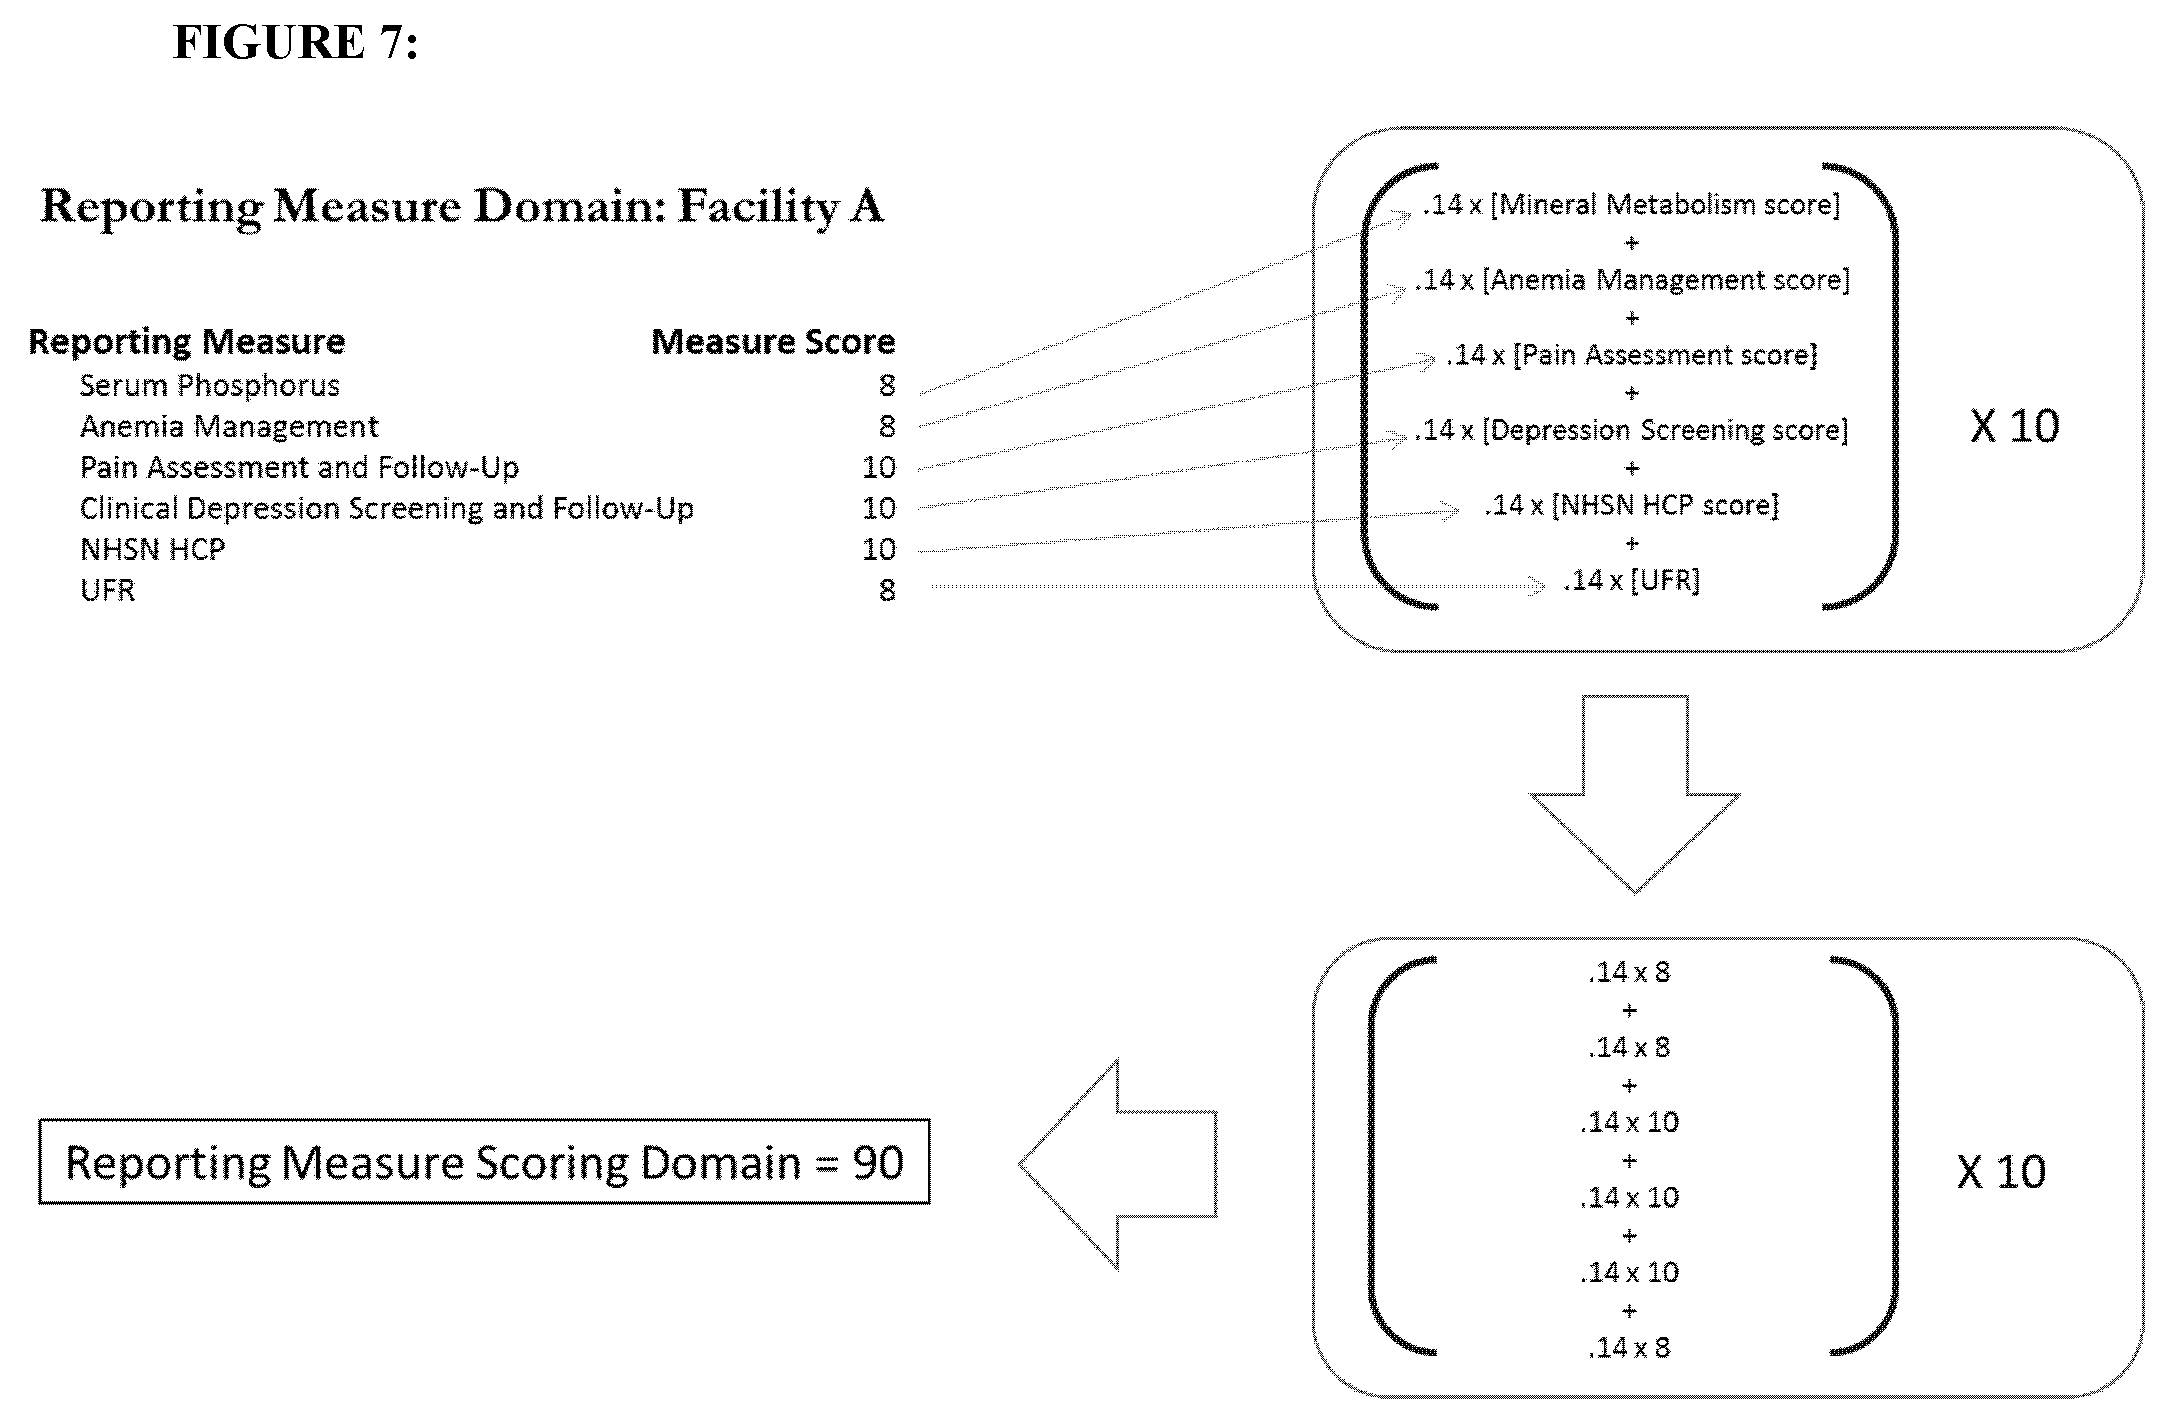 hight resolution of 7 example of the proposed py 2020 esrd qip scoring methodology